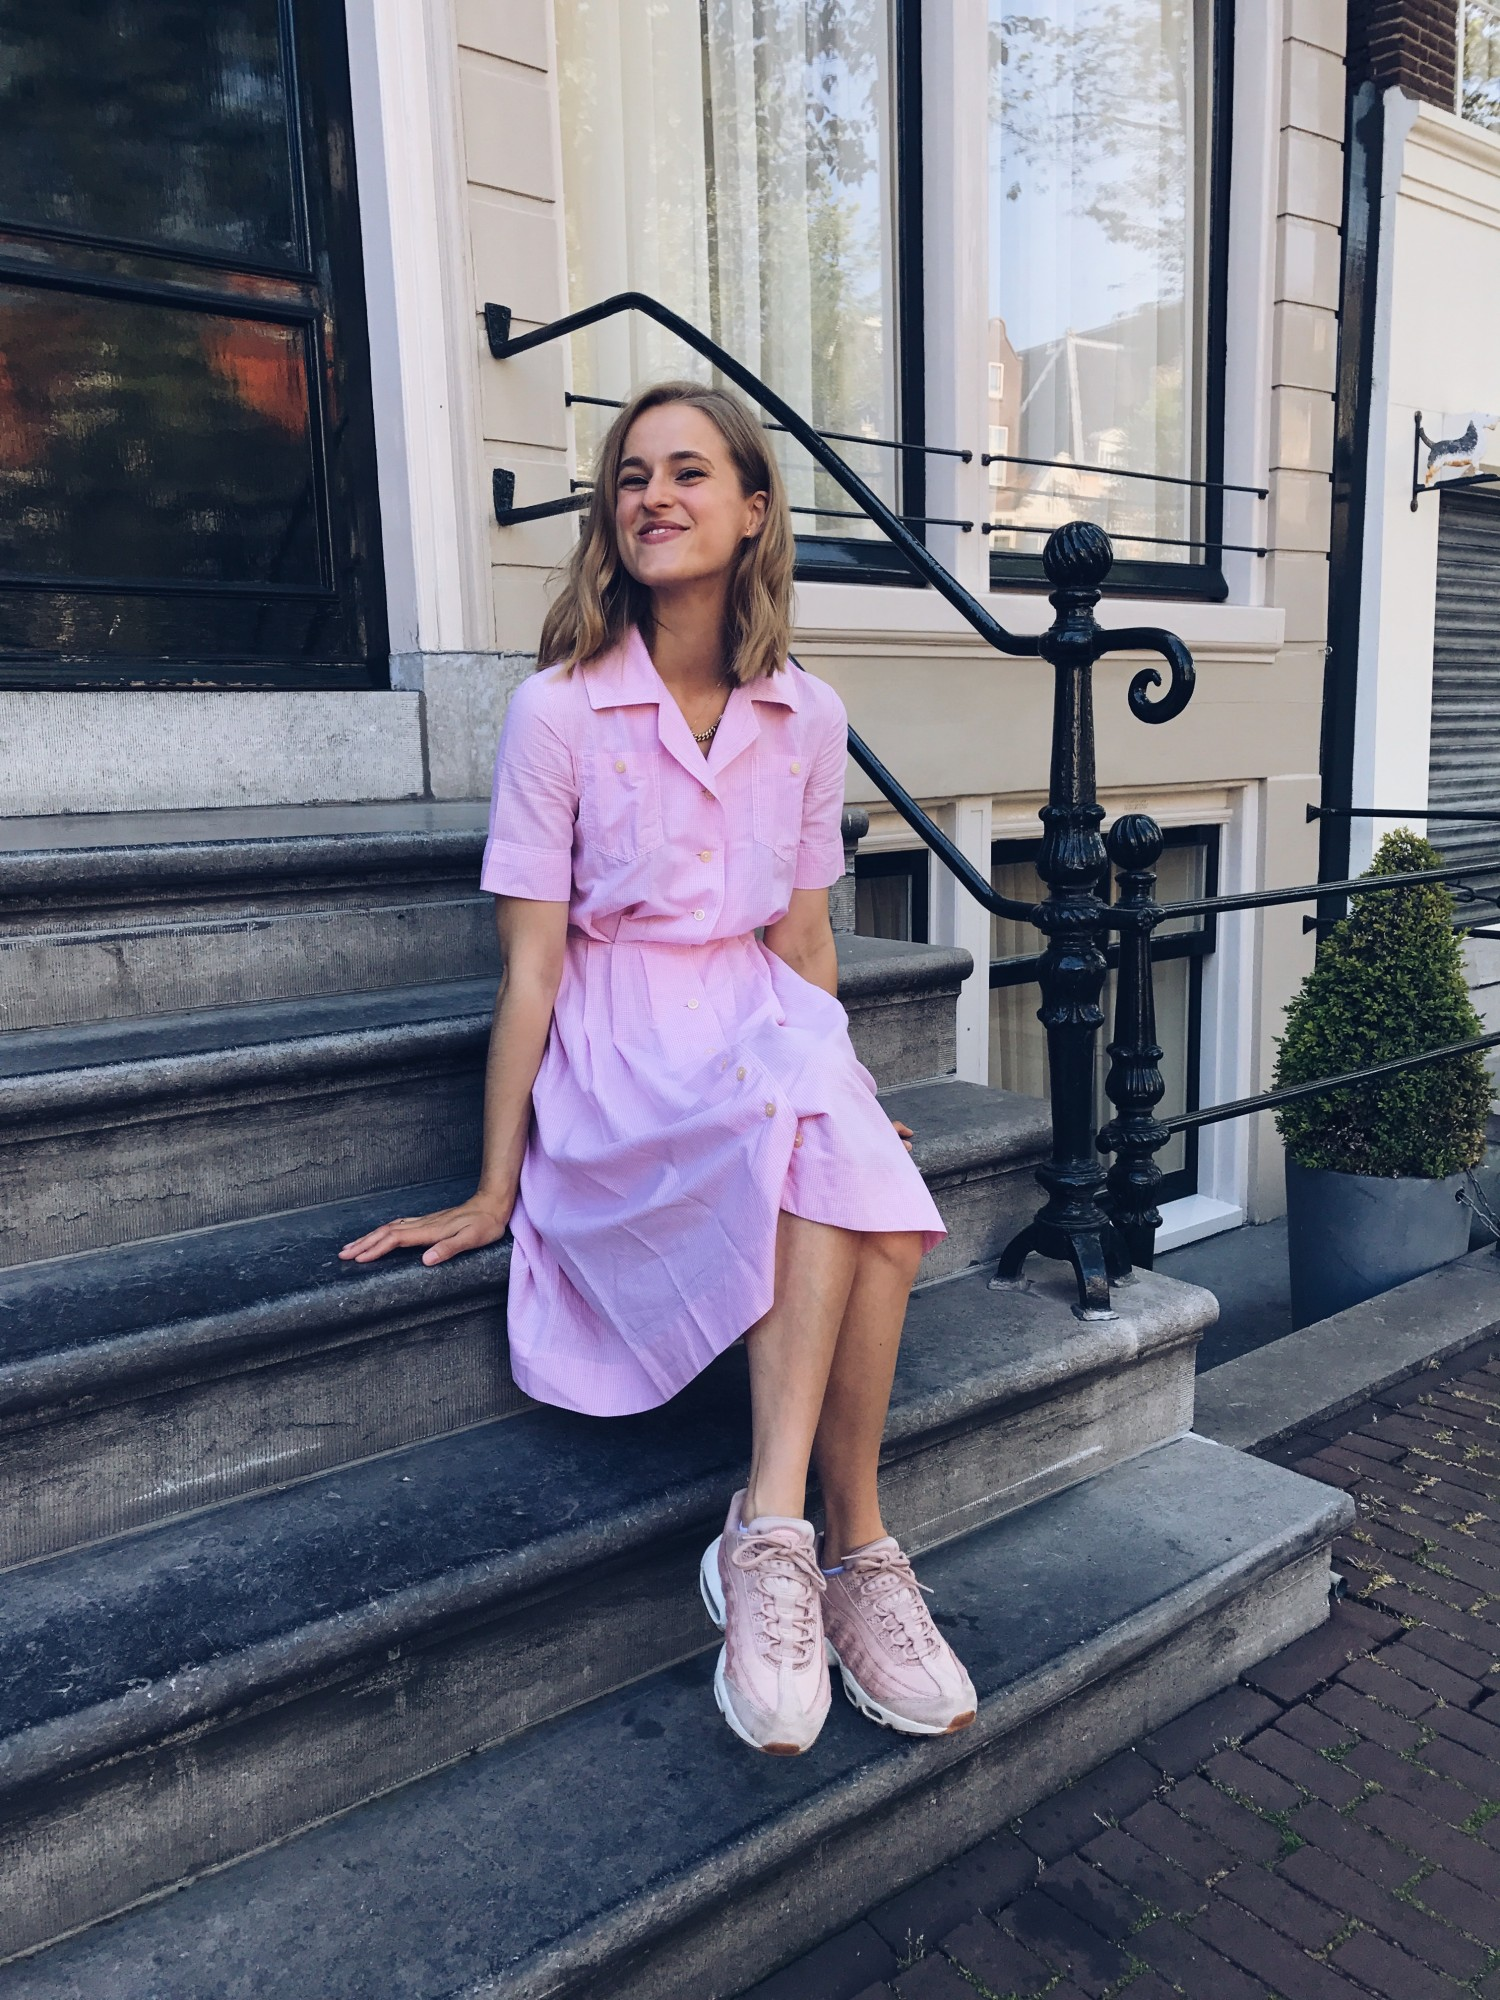 Cathrine Widunok Wichmand, Rockpaperdresses, Amsterdam guide